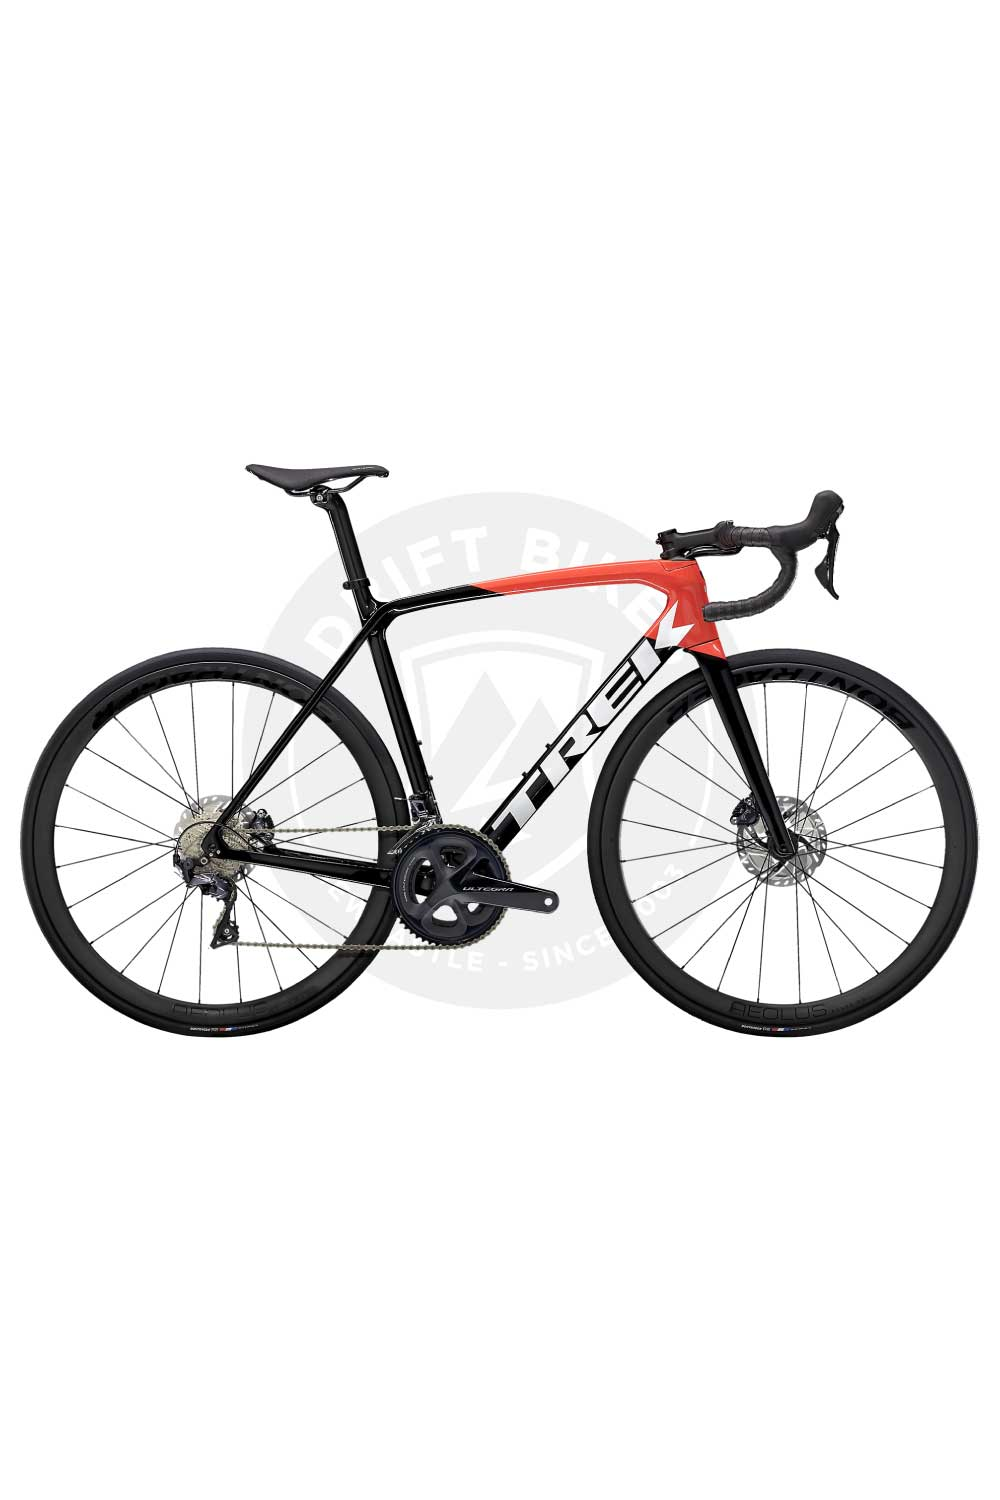 TREK 2021 Emonda SL6 Pro Road Bike